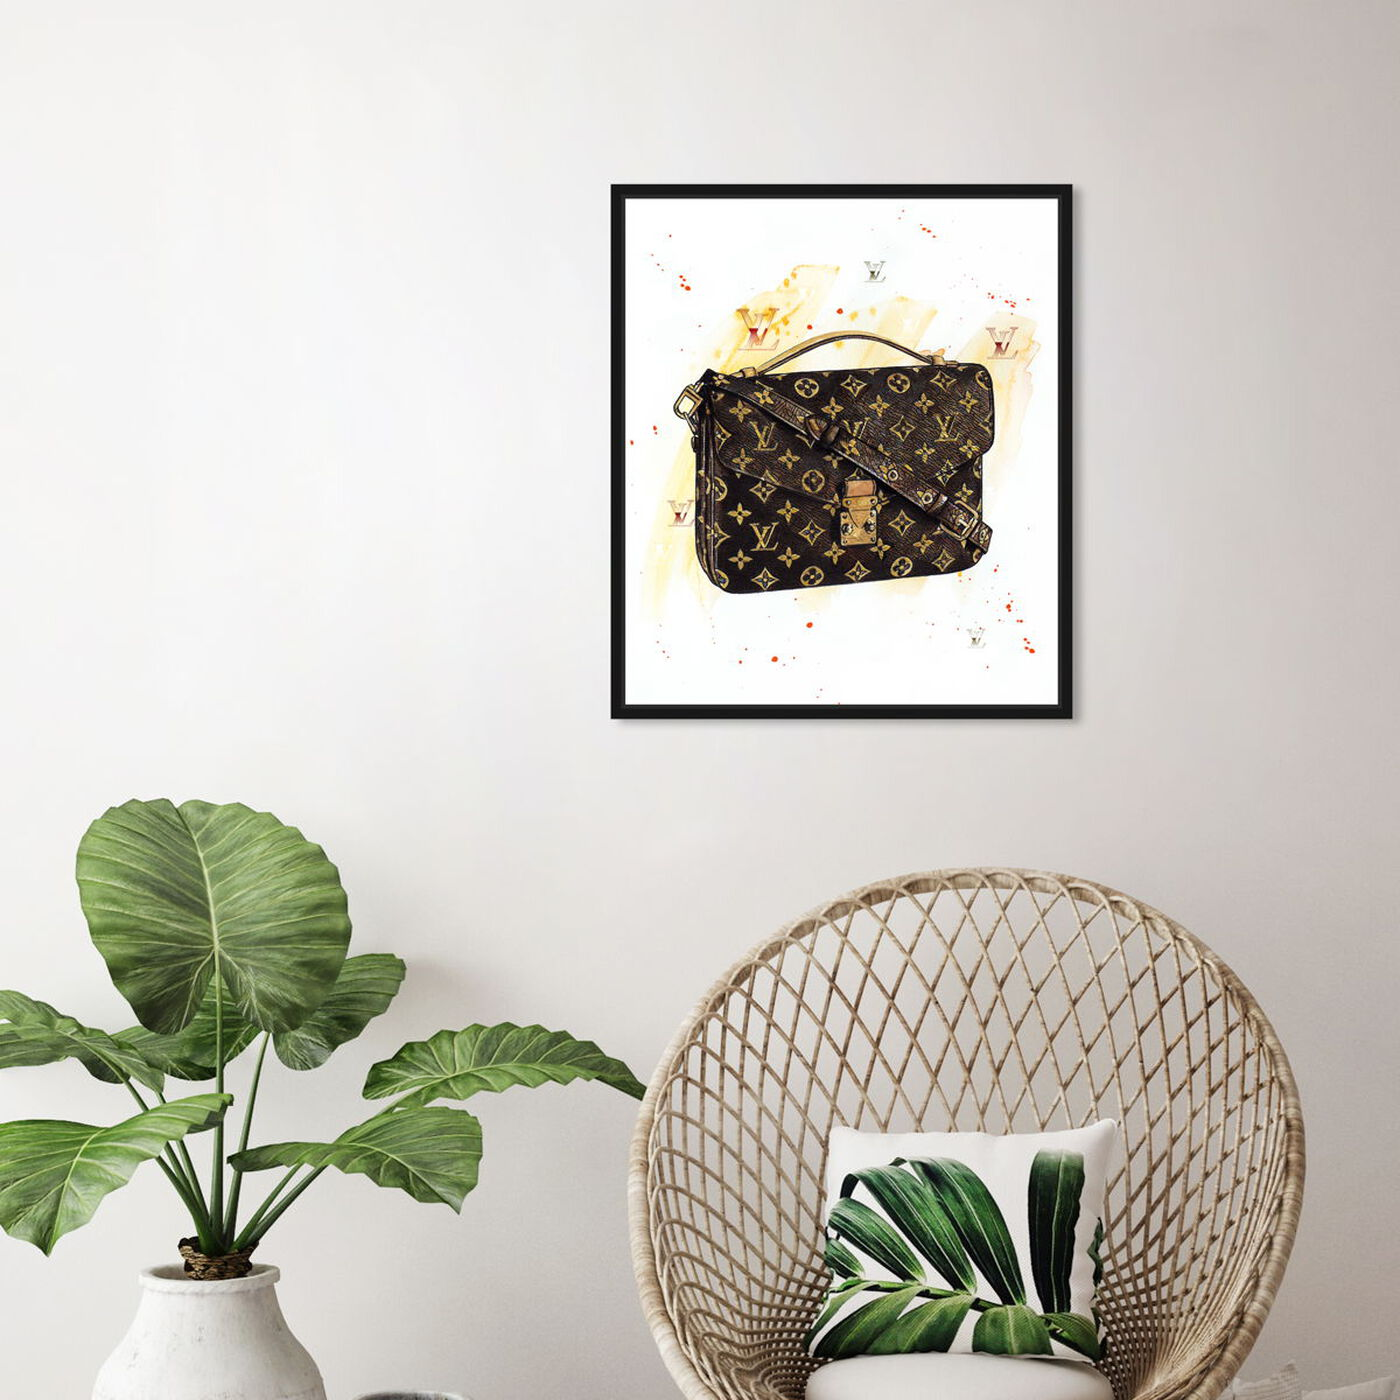 Hanging view of Doll Memories - Lavish Hand Bag Splashes featuring fashion and glam and handbags art.